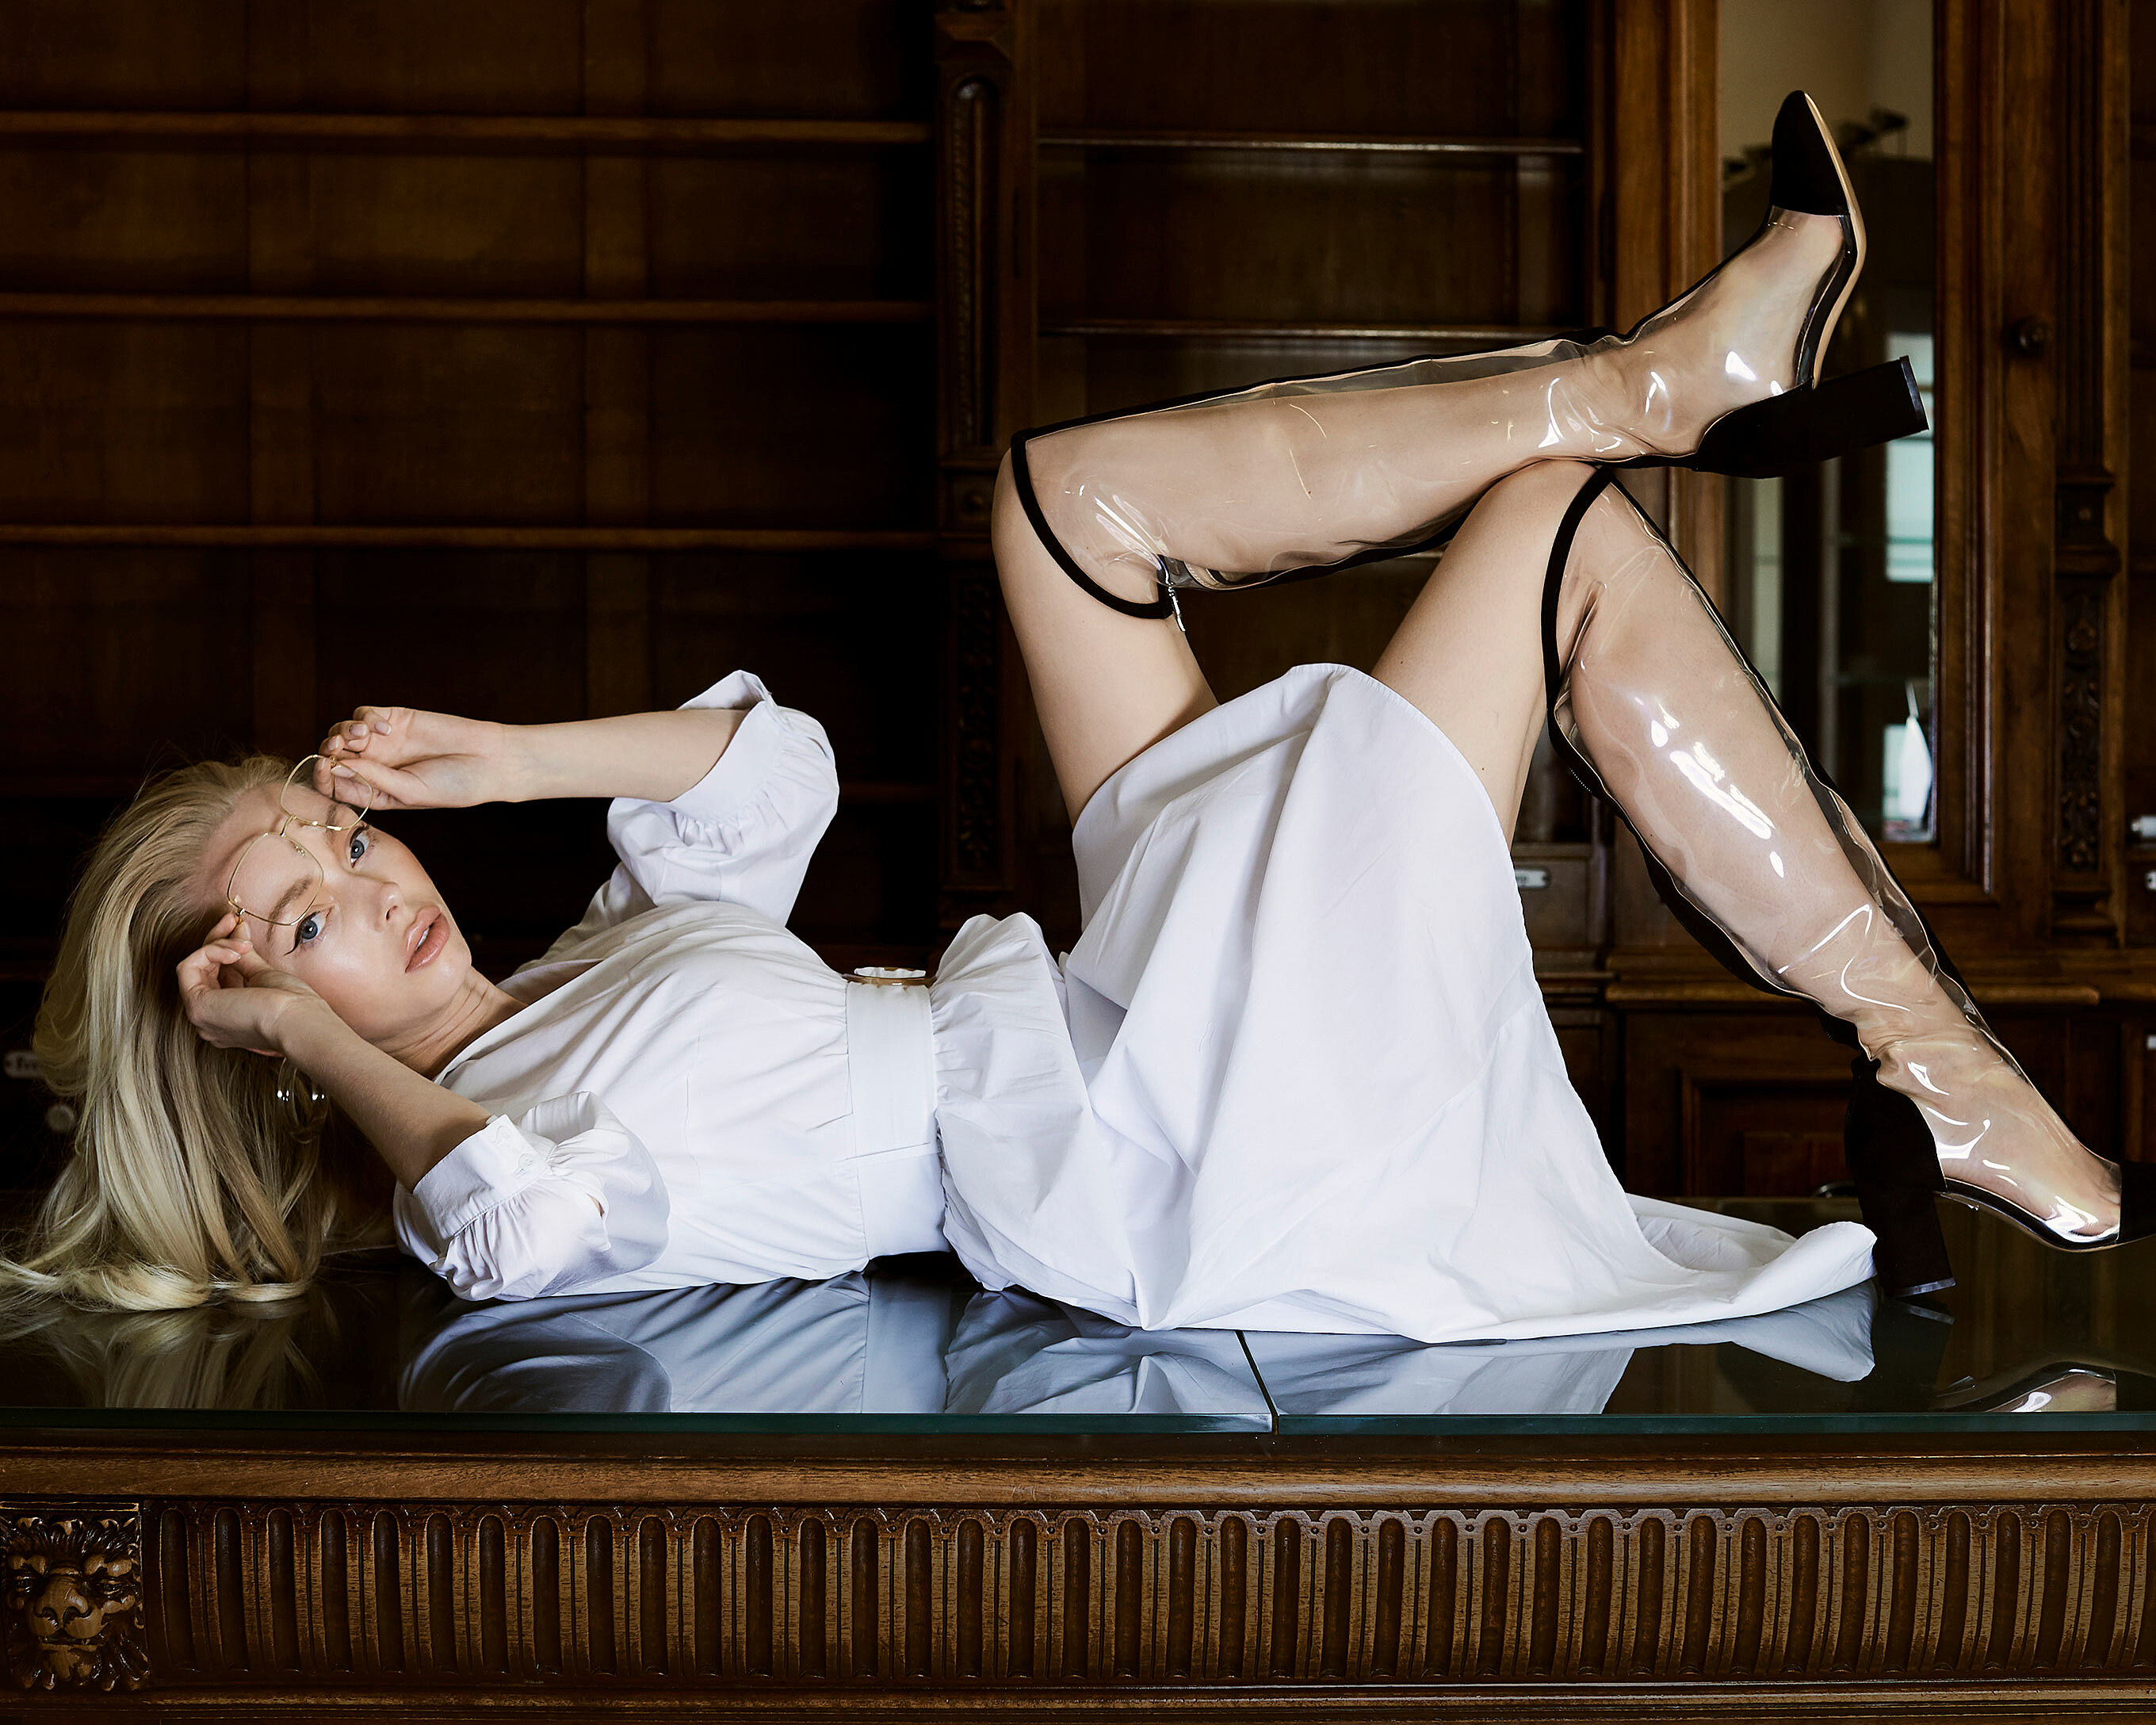 A blonde model lies on a brown table with a white dress. She wears glasses and transparency boots with black applications